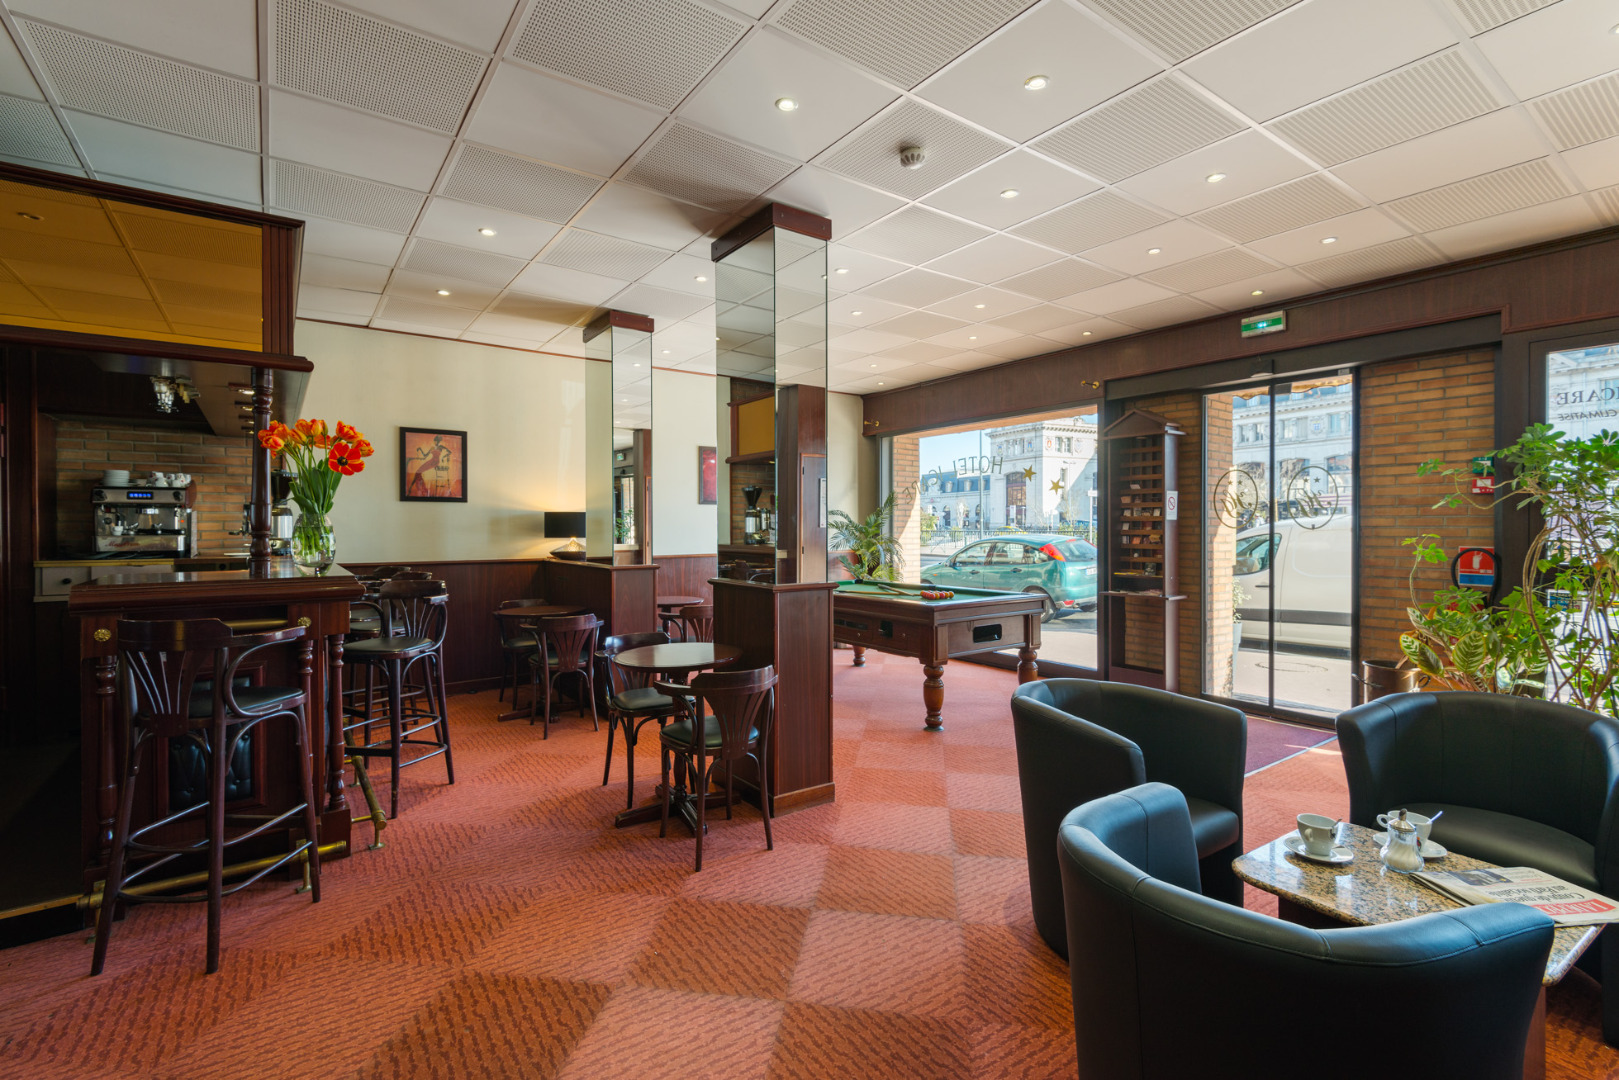 Services at the hotel icare 2 star hotel in toulouse for Hotels toulouse